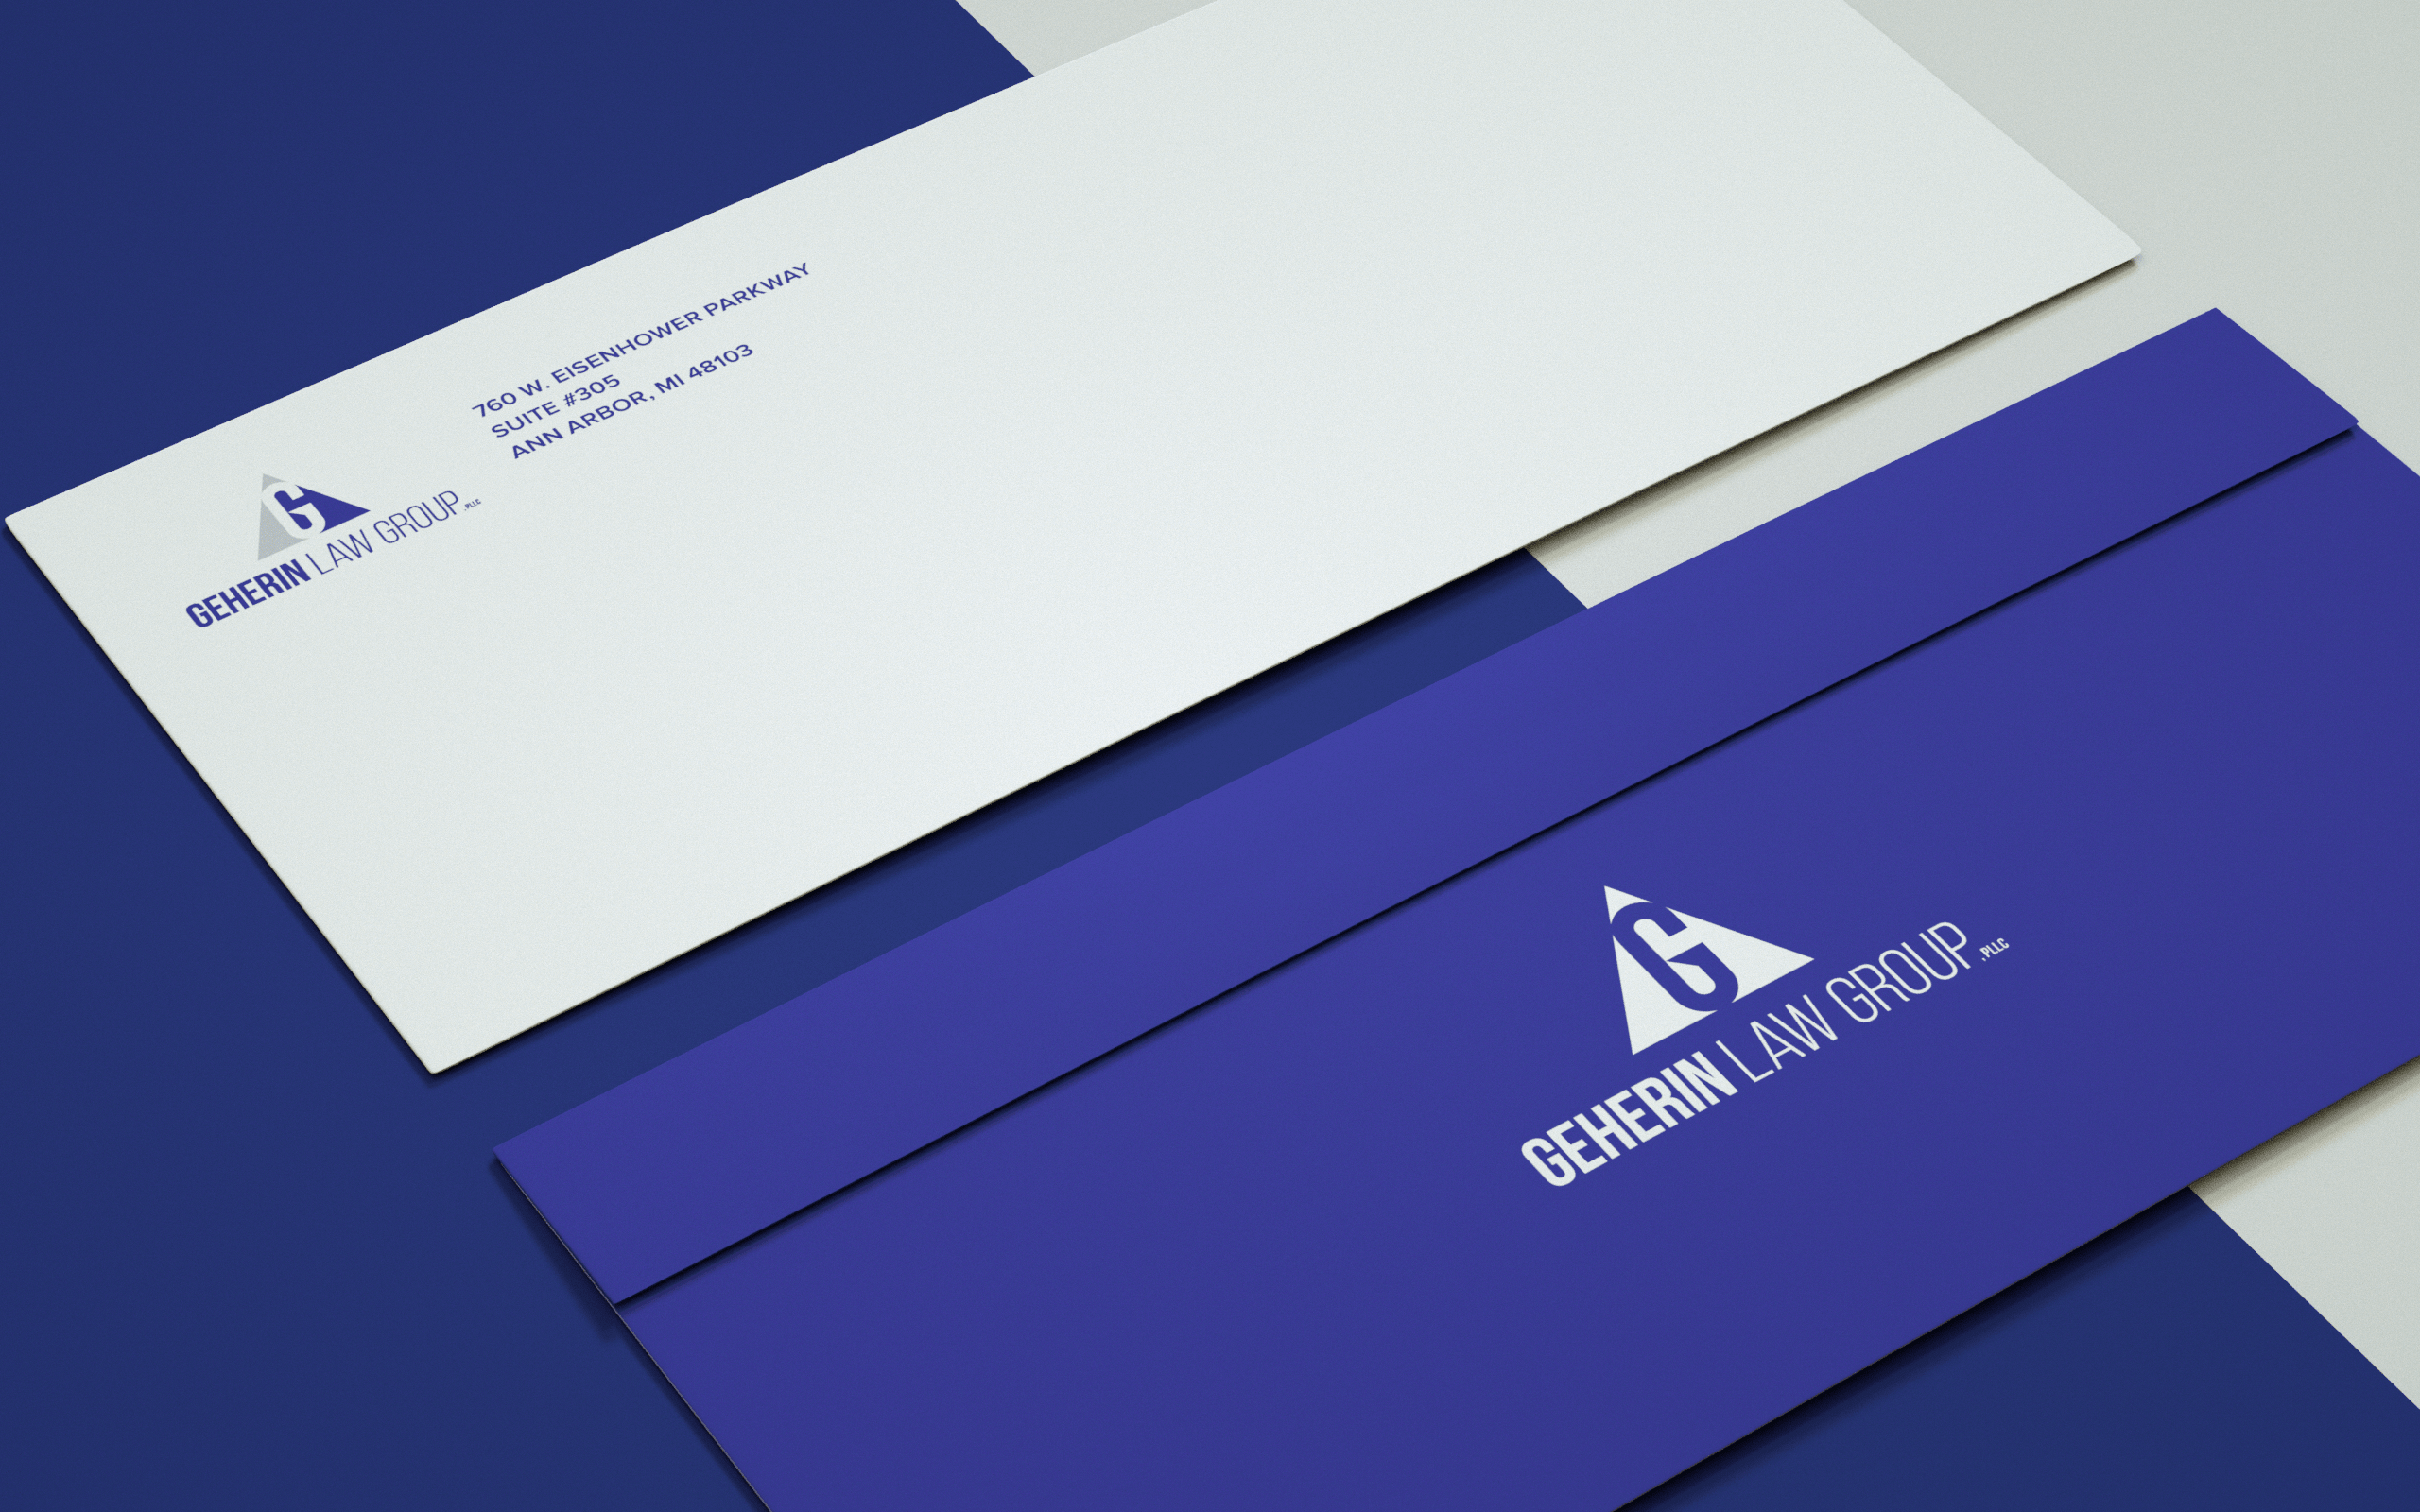 GEHERIN LAW GROUP ENVELOPE